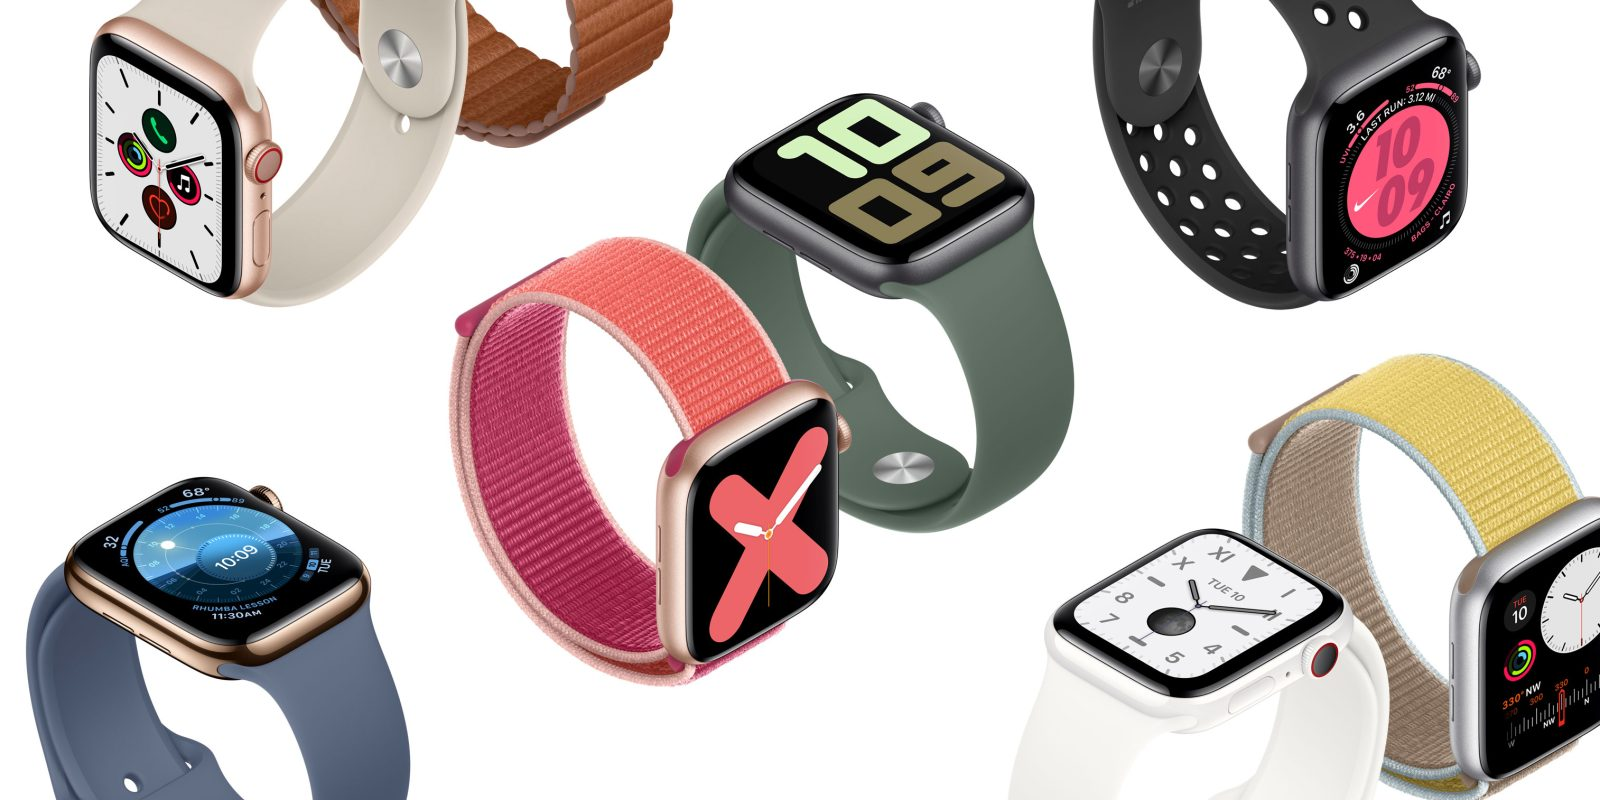 Nearly every Apple Watch band is at least 20% off, deals from $24